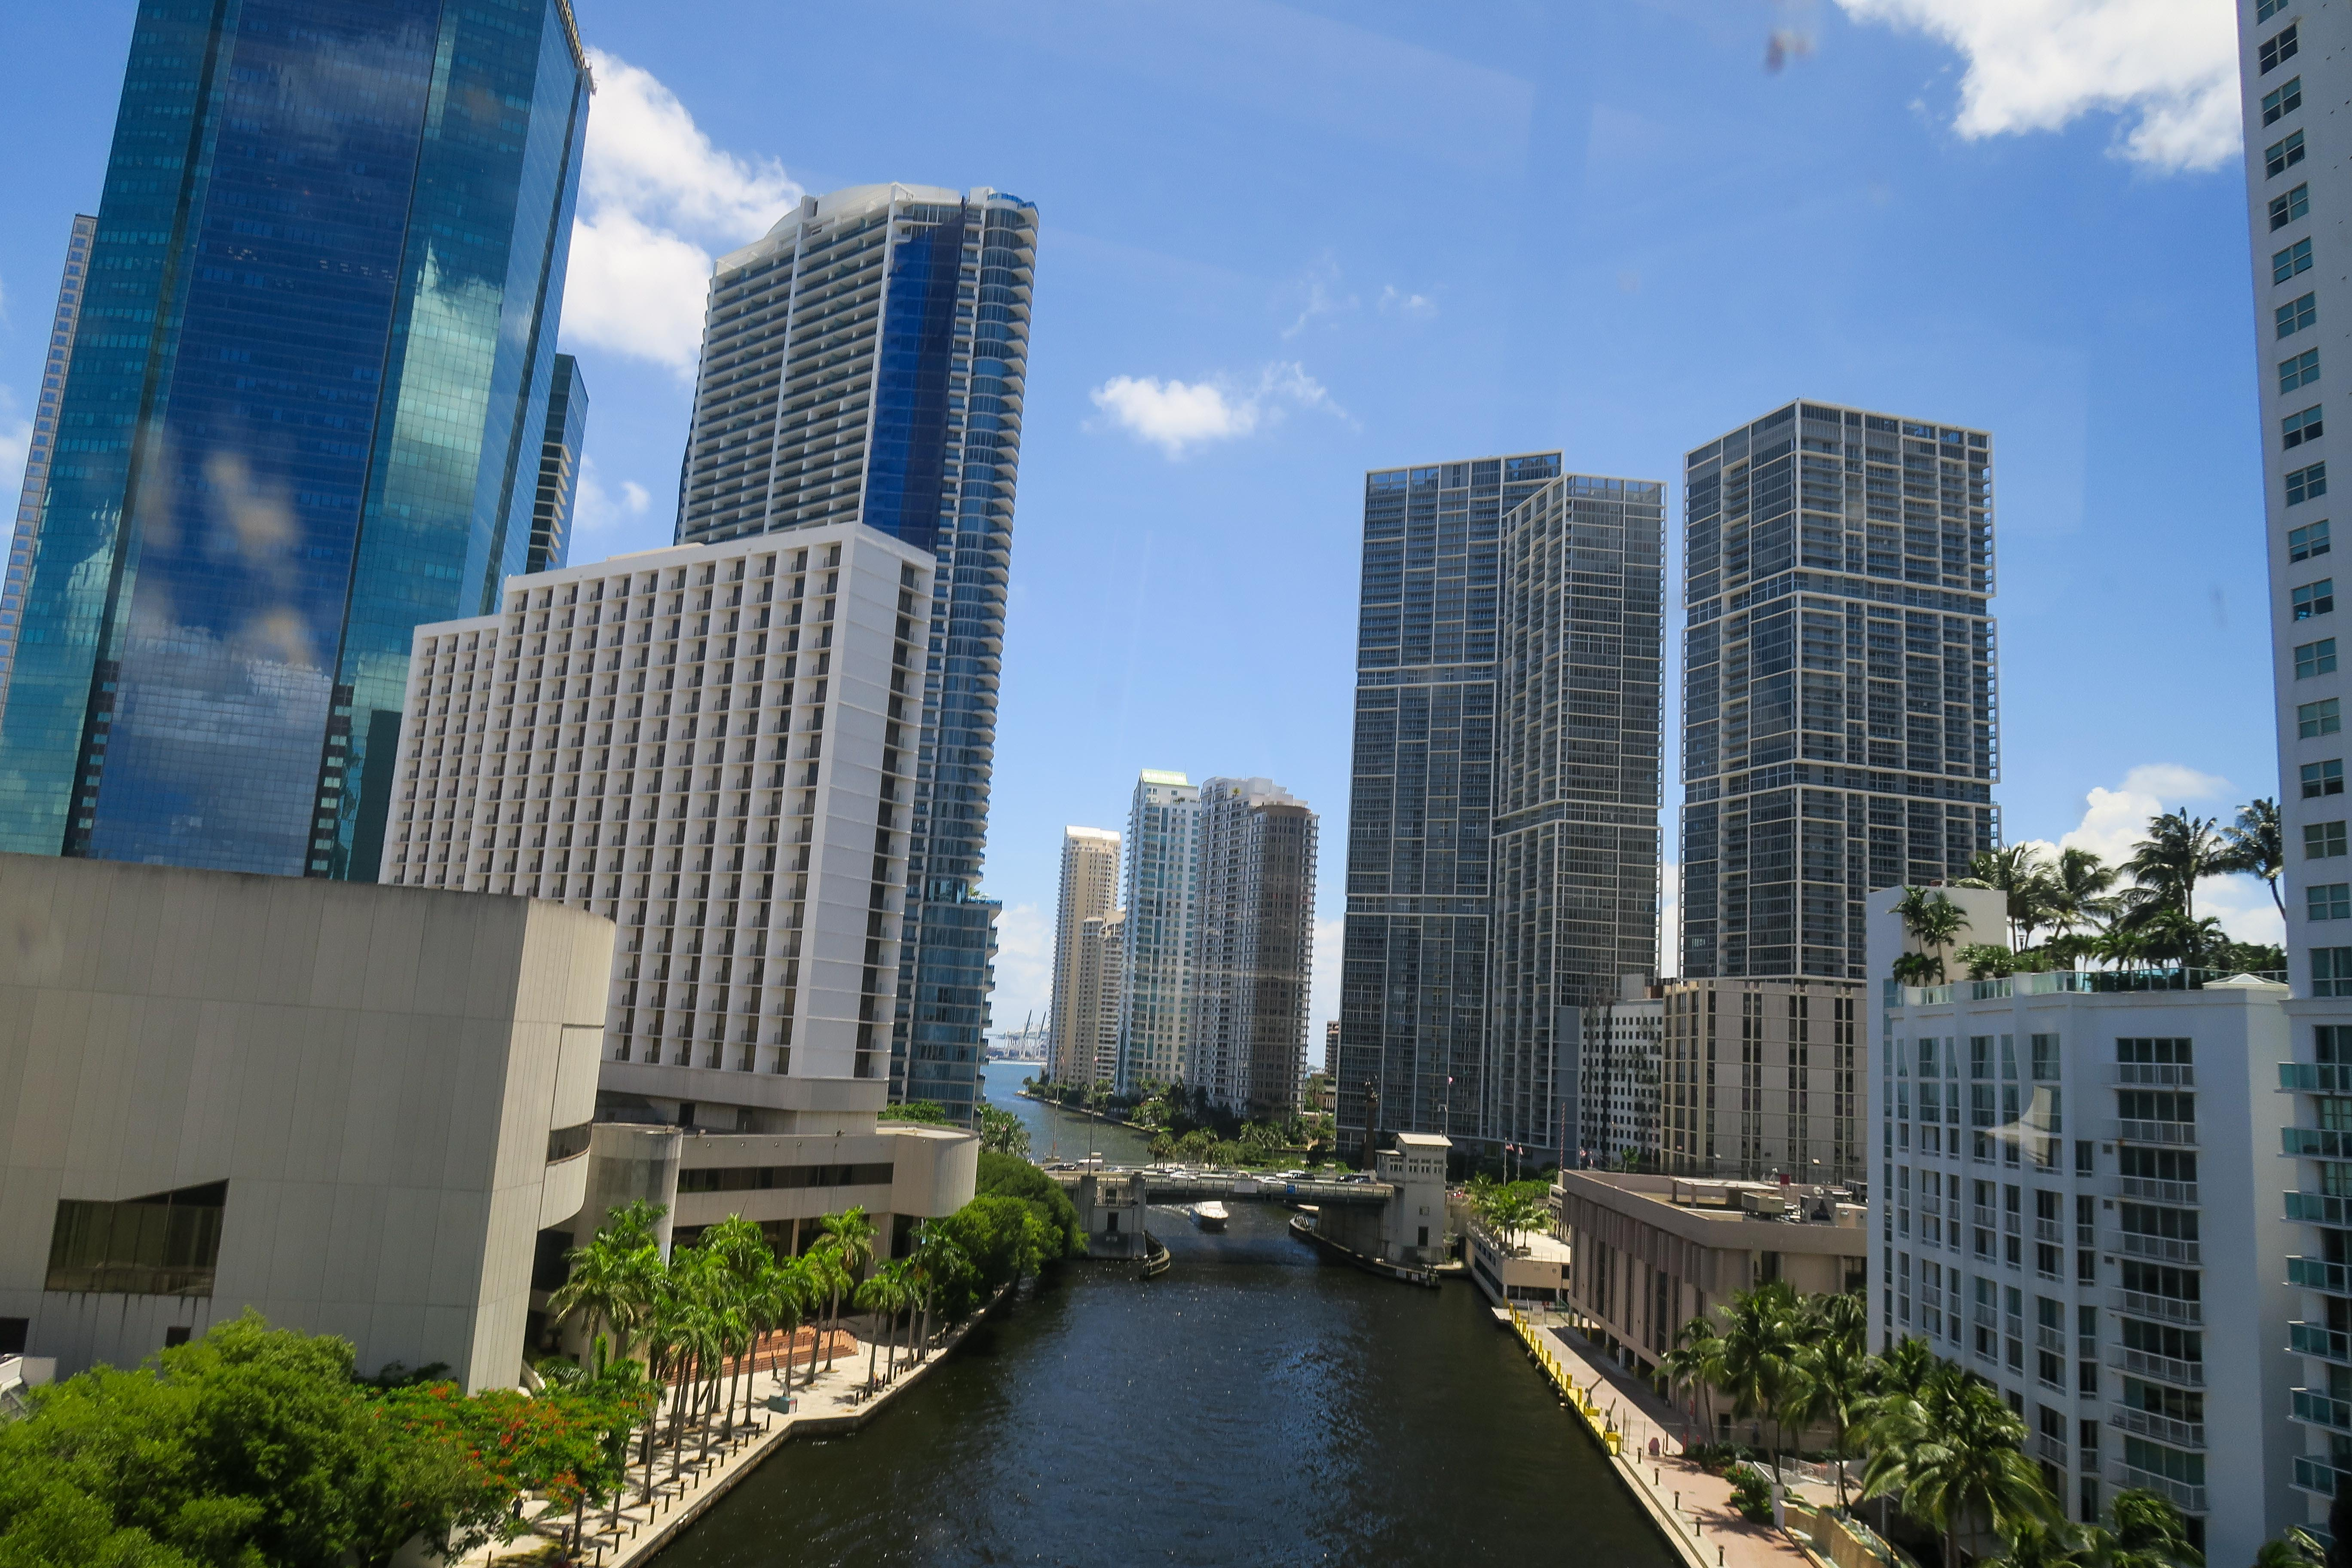 Miami Travel Blog & Diary by Rosie Andre (wanderlust, traveller, miami, florida, usa, united states, sunshine state, photos, photographs, blogger, guide, to do list, tour, what to do in miami, baseball, american football, cuba, food, beach, palm trees, paradise)